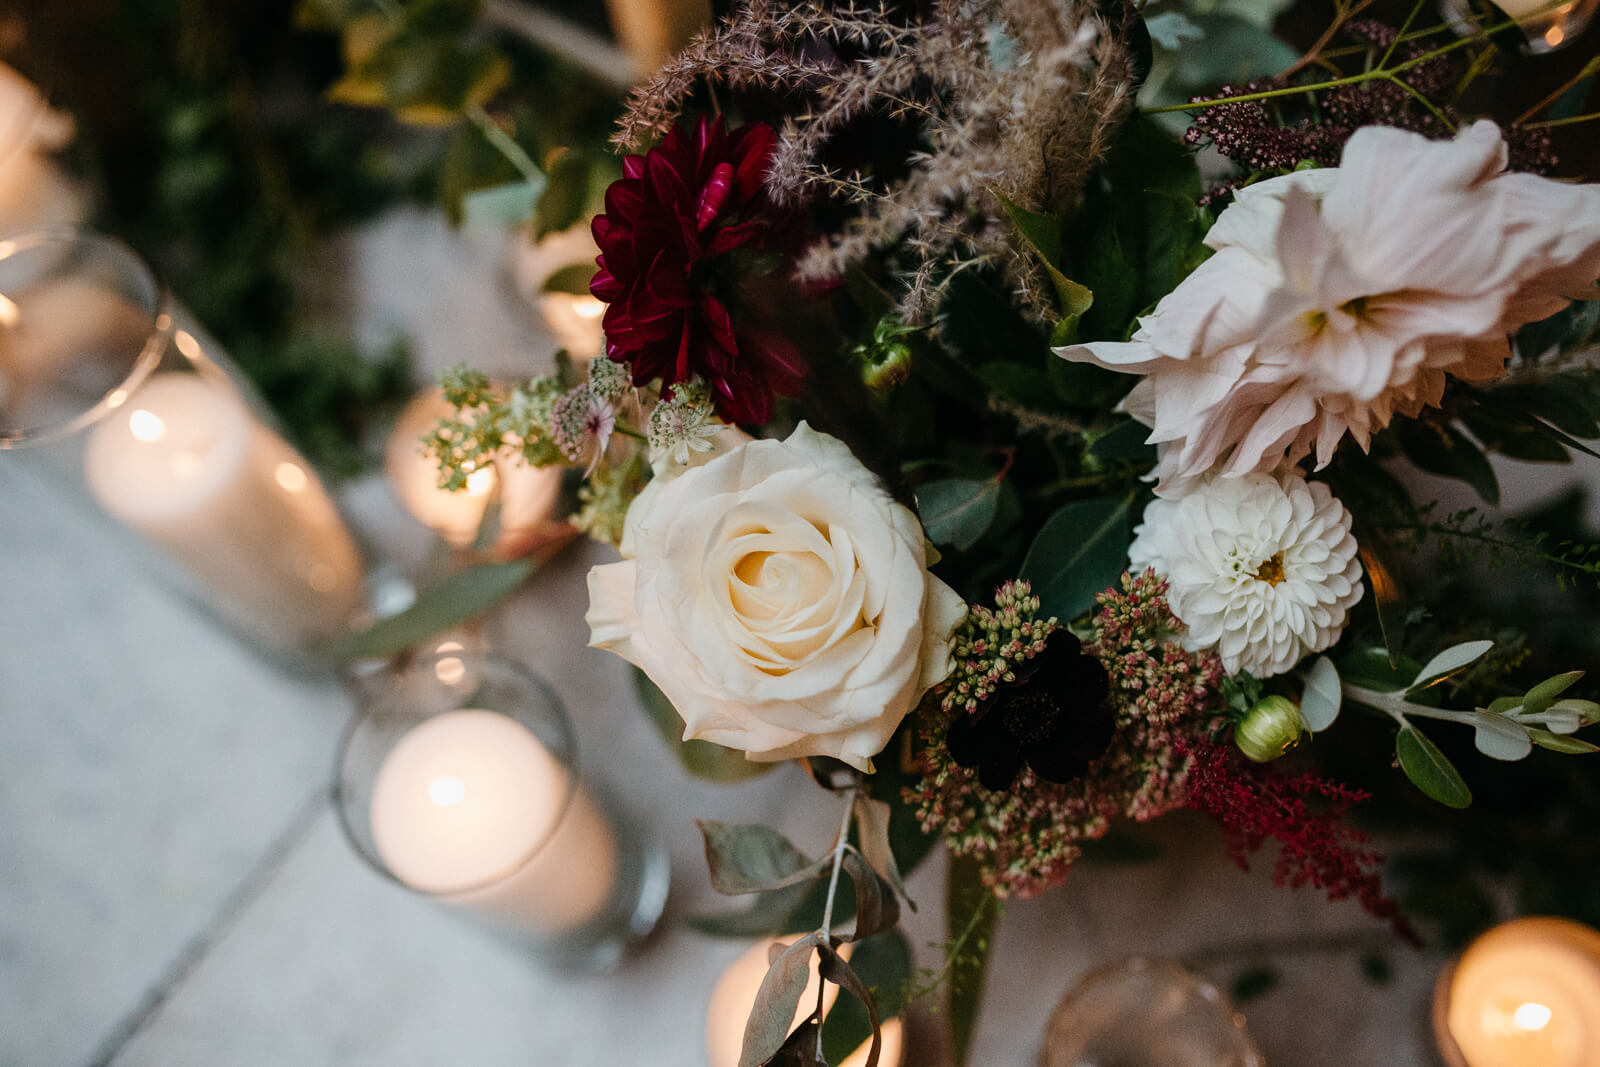 white roses and wine dahlias and hurricane vases with church candles on stairs at London wedding venue